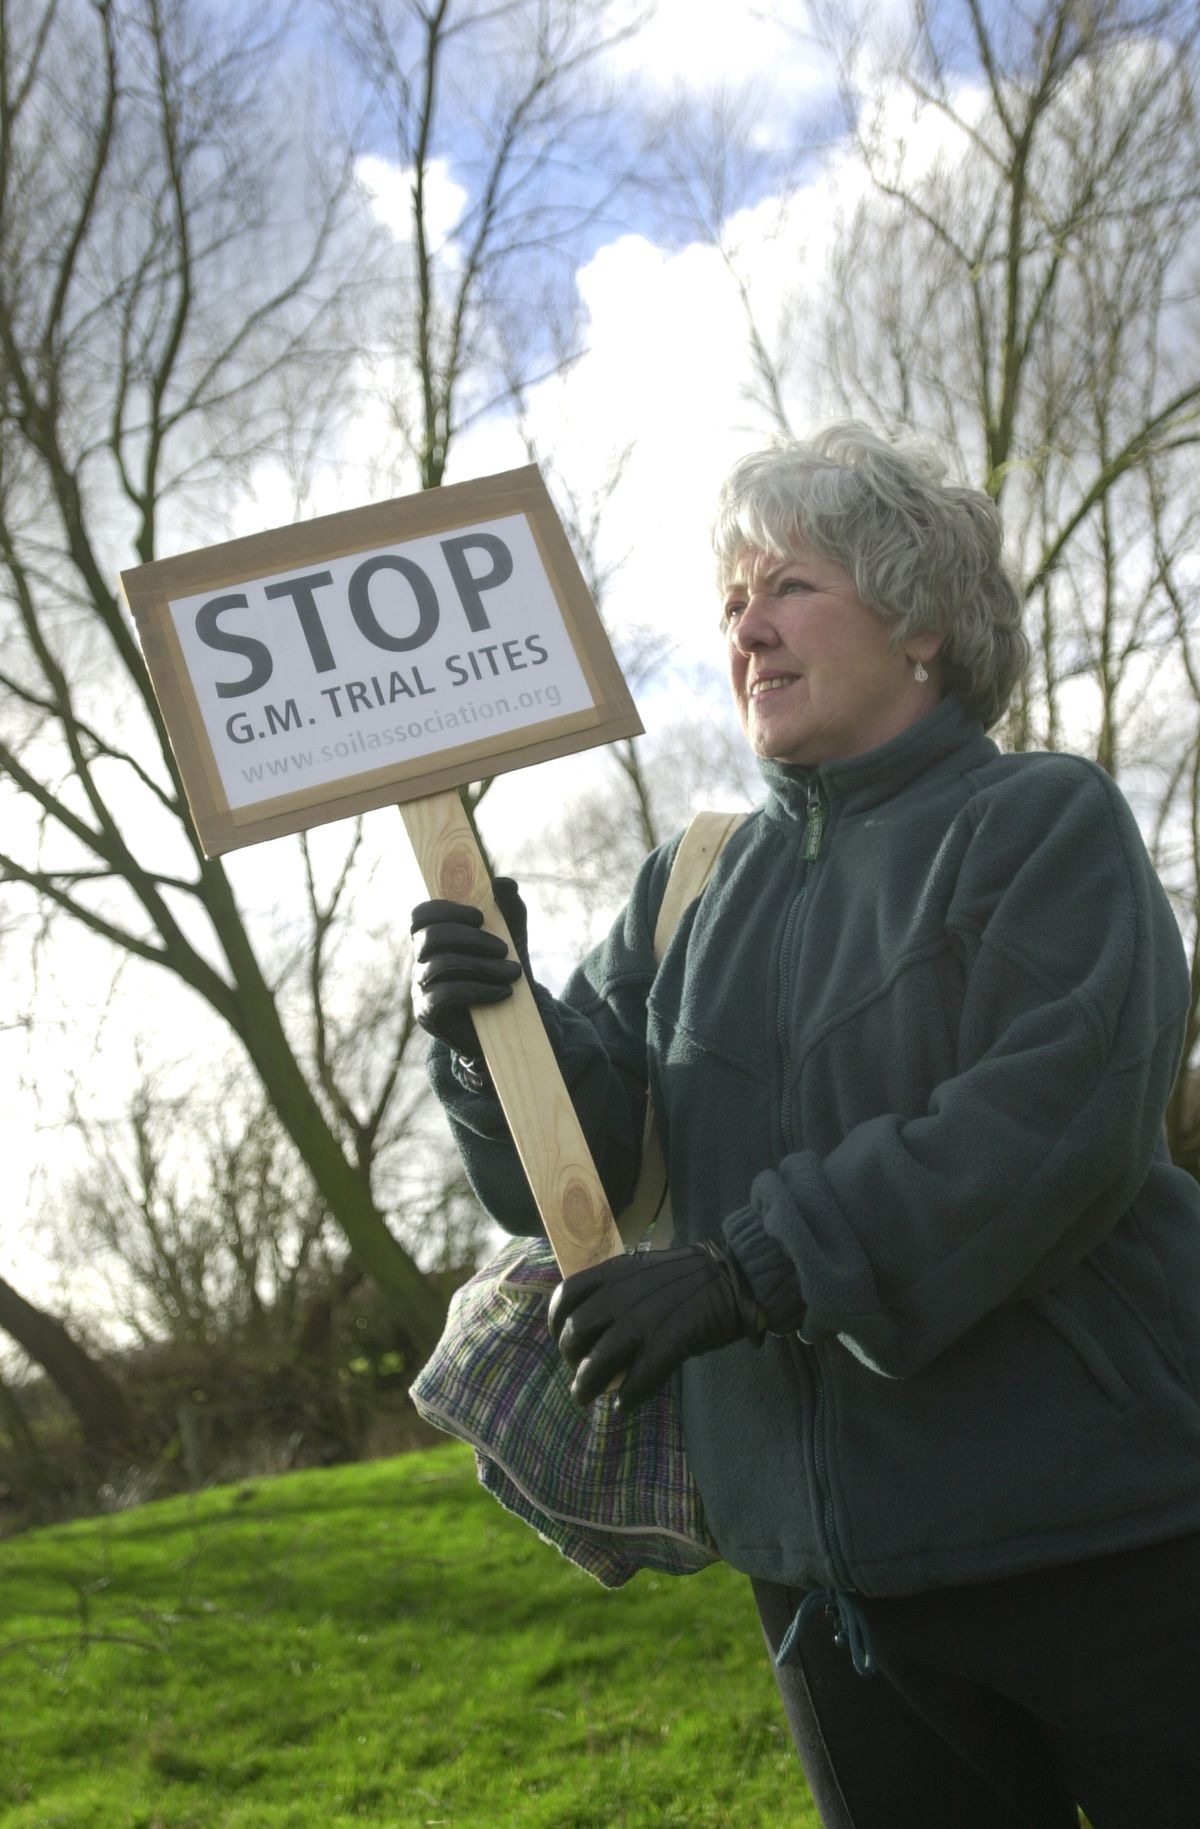 Janet Vernon from Higher Heath protests near the Bagley farm which has taken part in genetically modified crop trials.